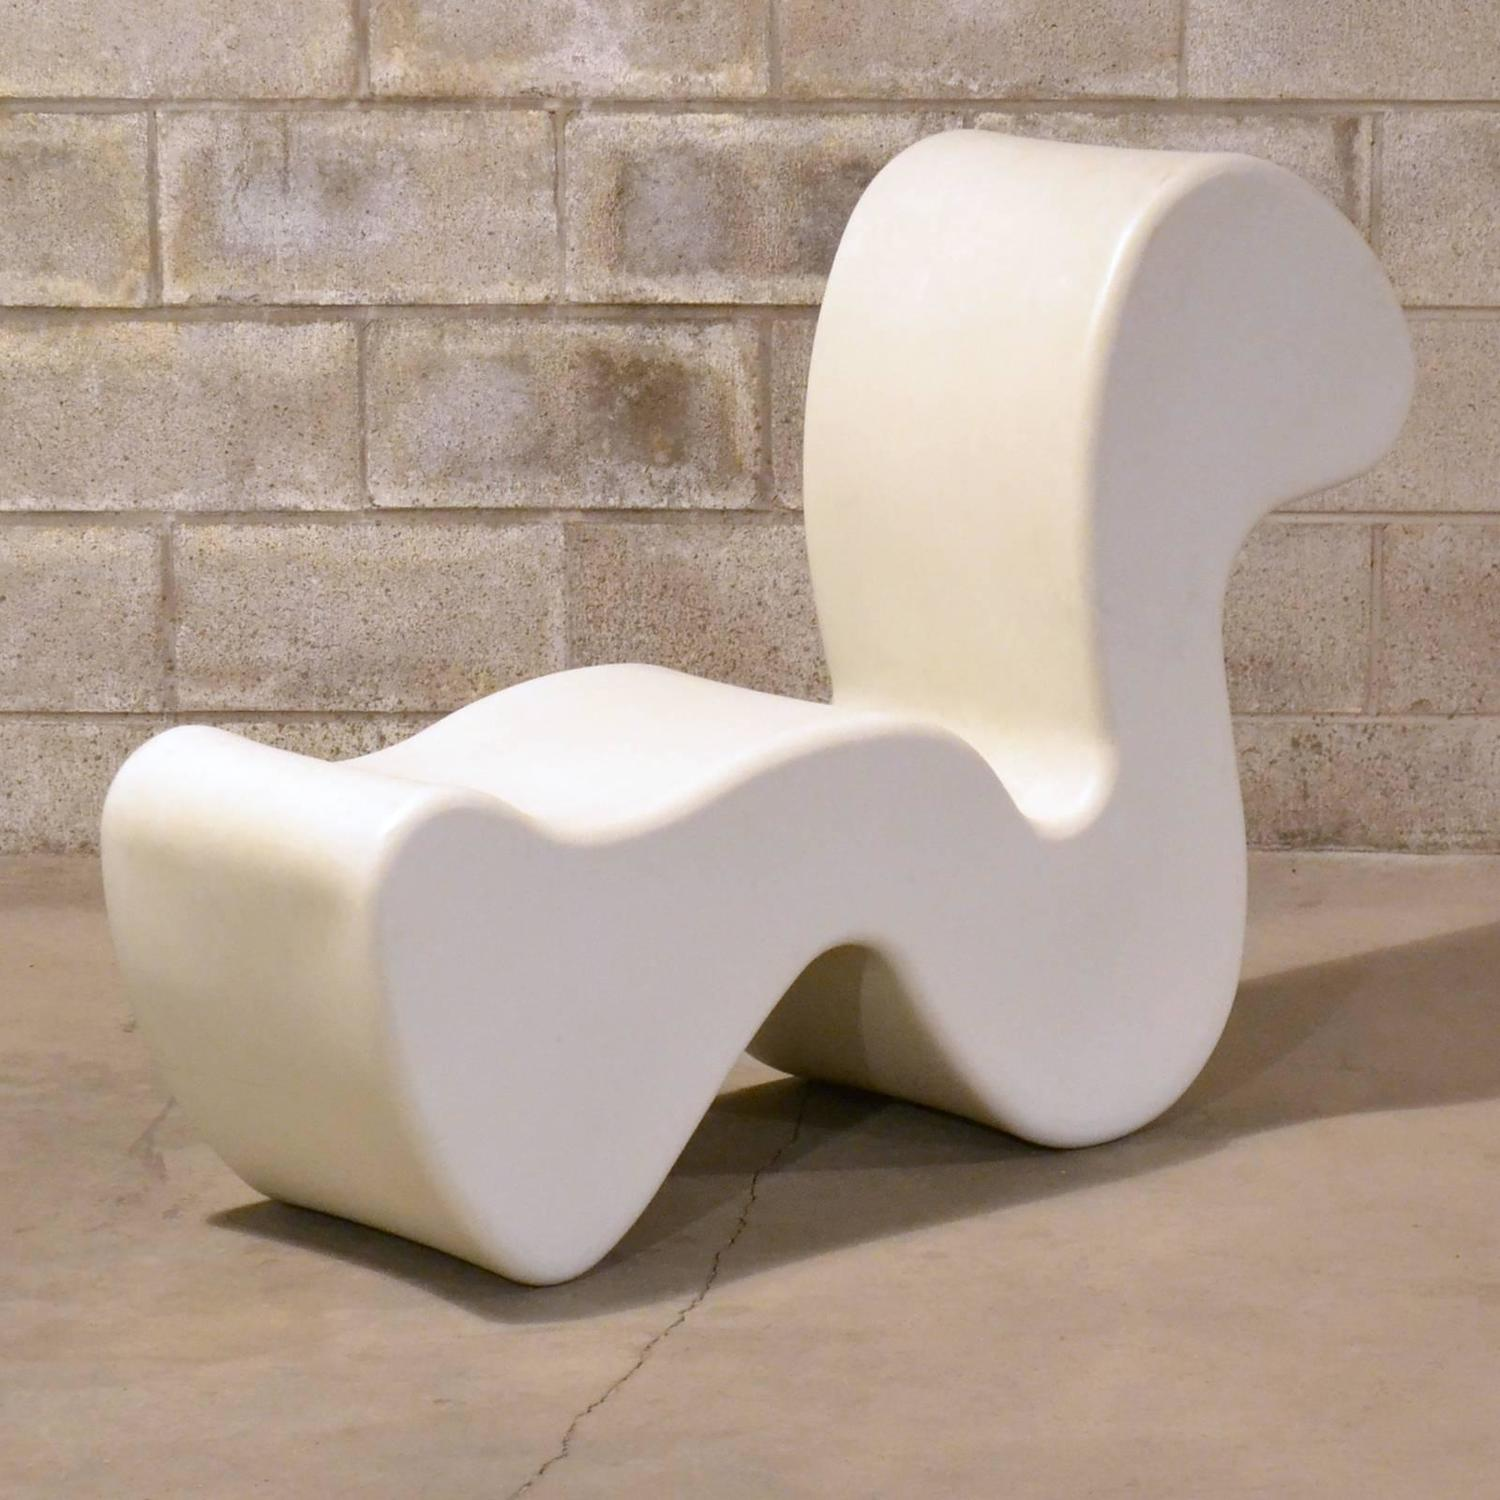 Verner panton phantom by innovation for sale at 1stdibs - Verner panton phantom chair ...